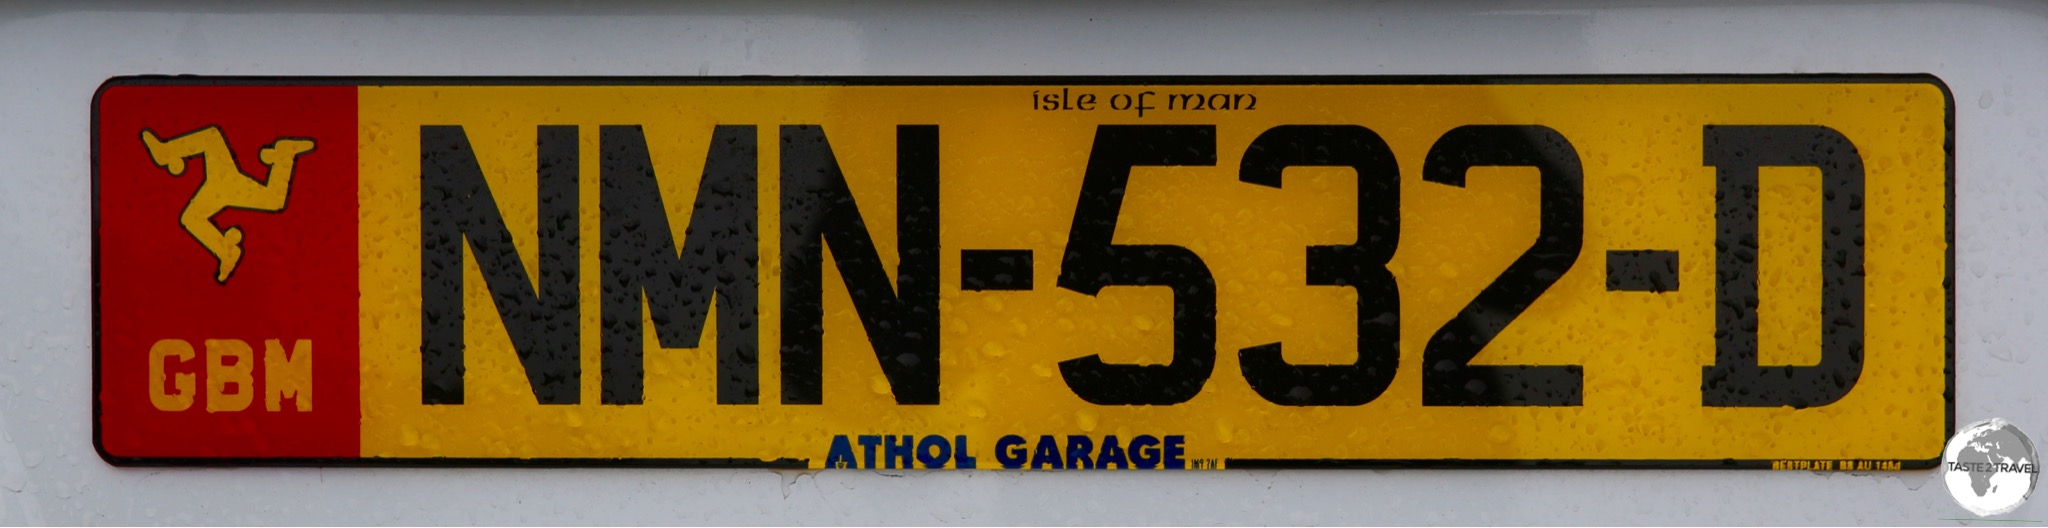 All Isle of Man number plates feature the 'Legs of Mann'.